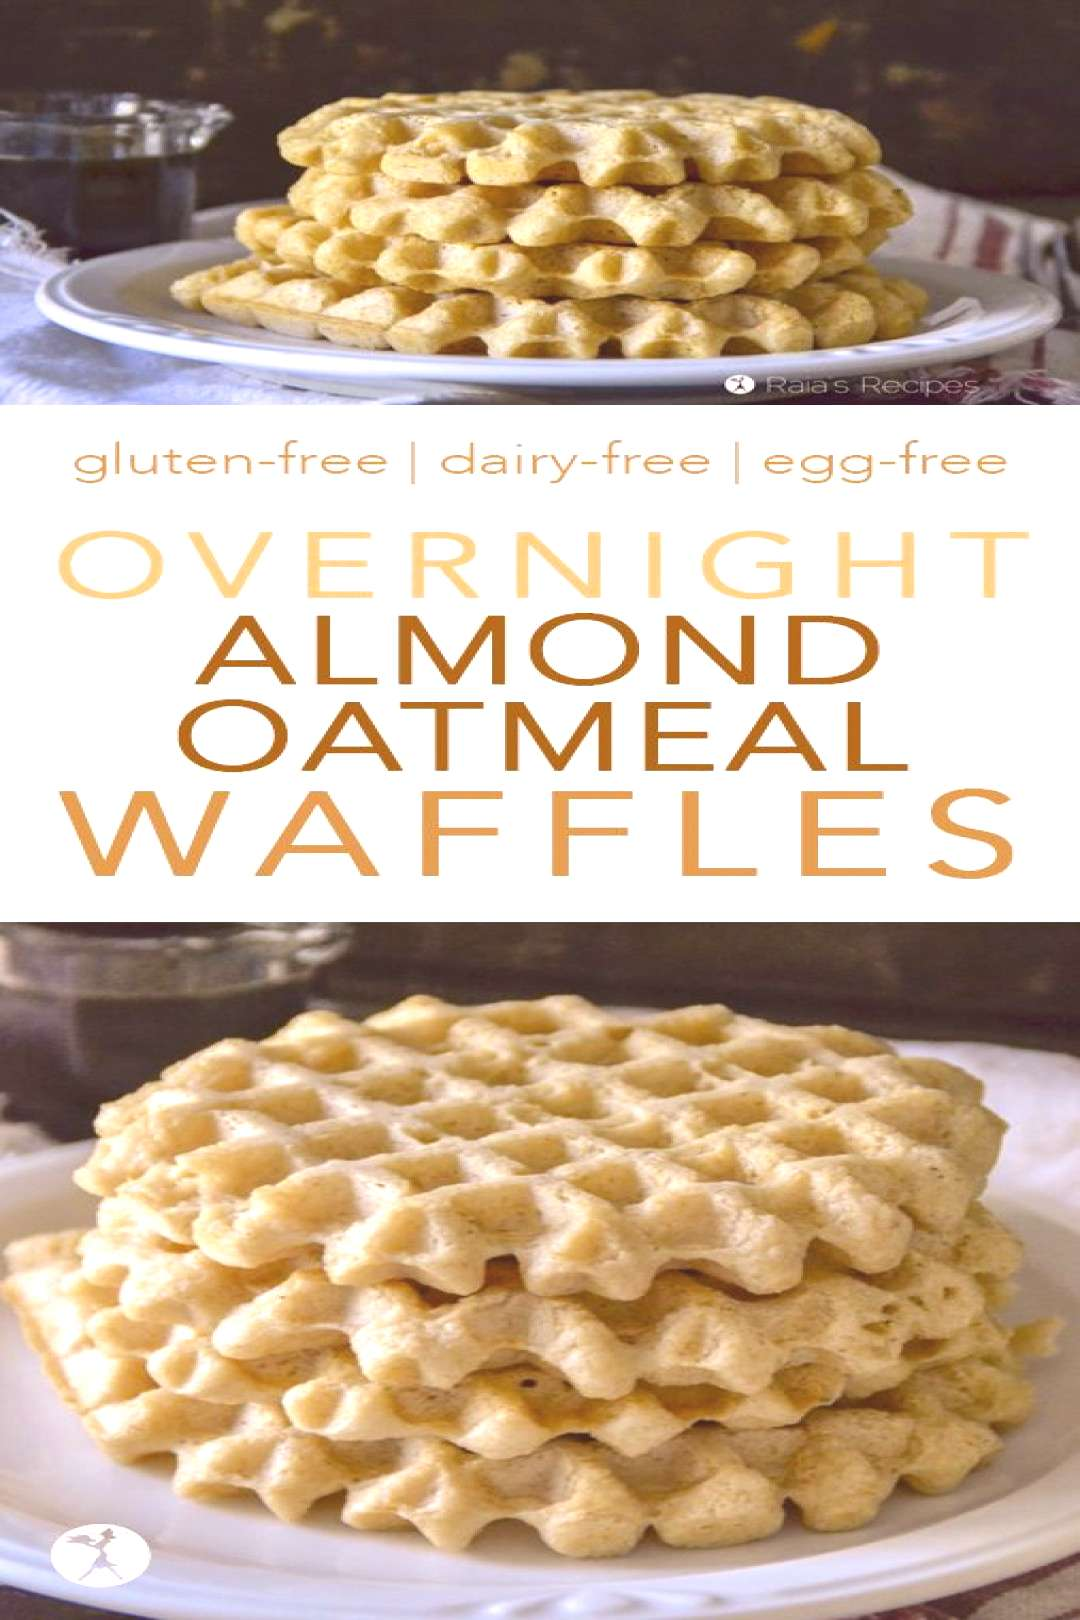 Easy and delicious, these Overnight Almond Oatmeal Waffles are a wonderful way to introduce you to